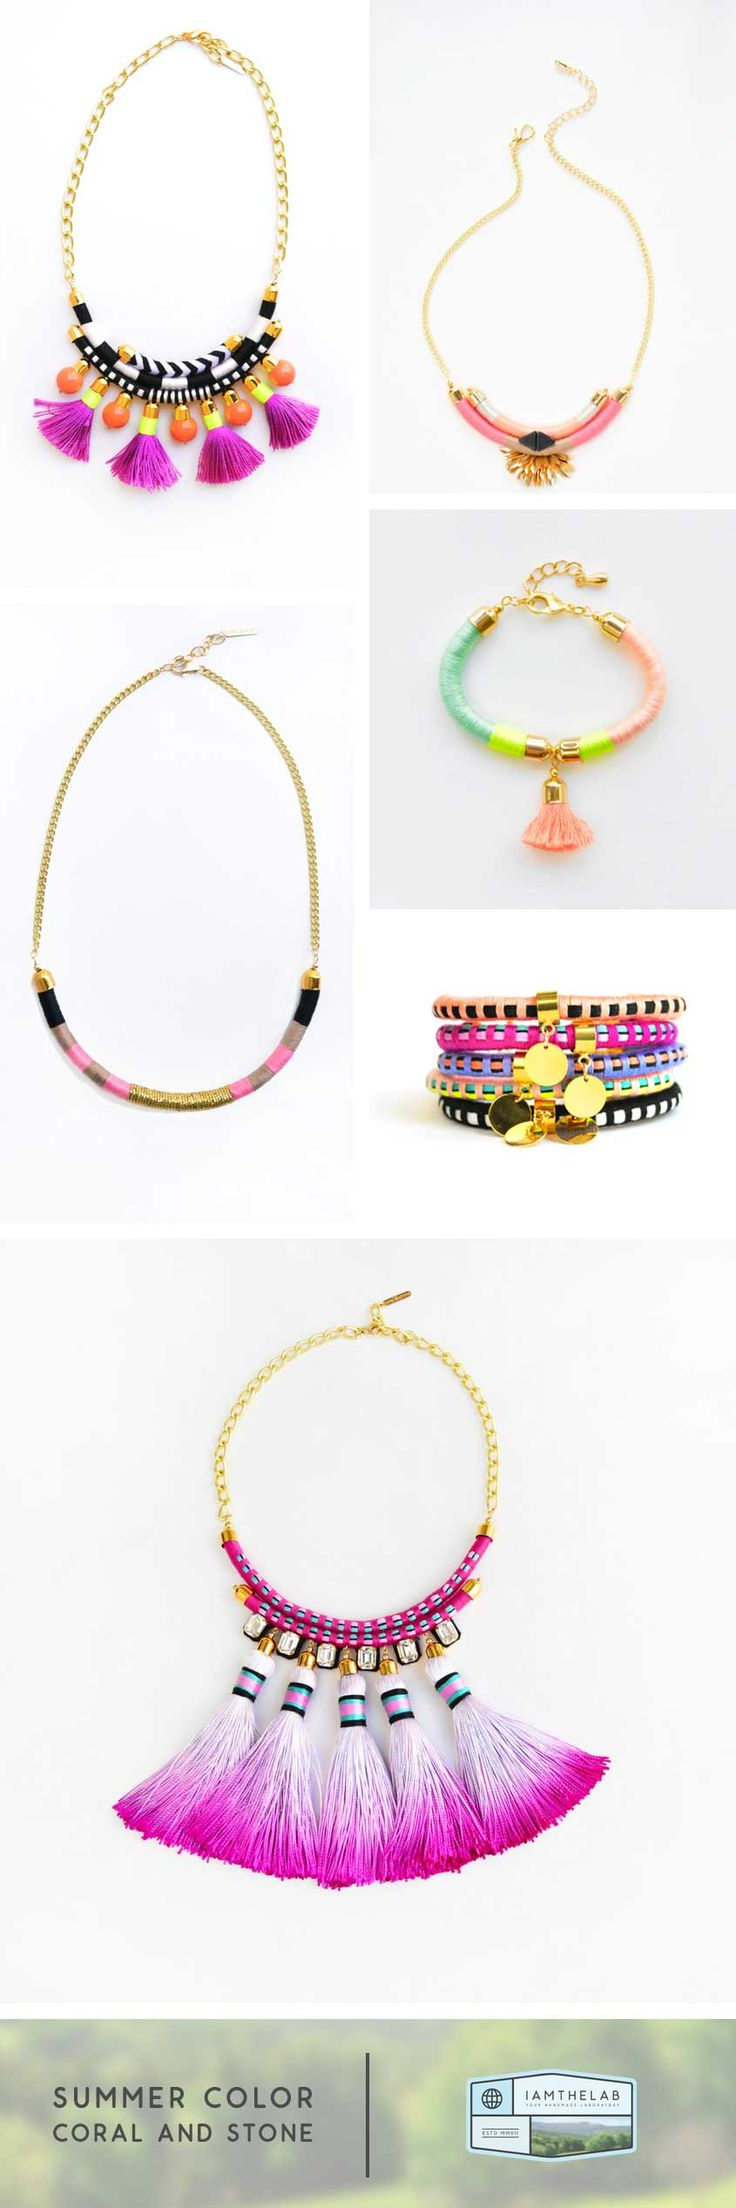 247 best jewelry (+diy) images on pinterest | jewel, rings and diy